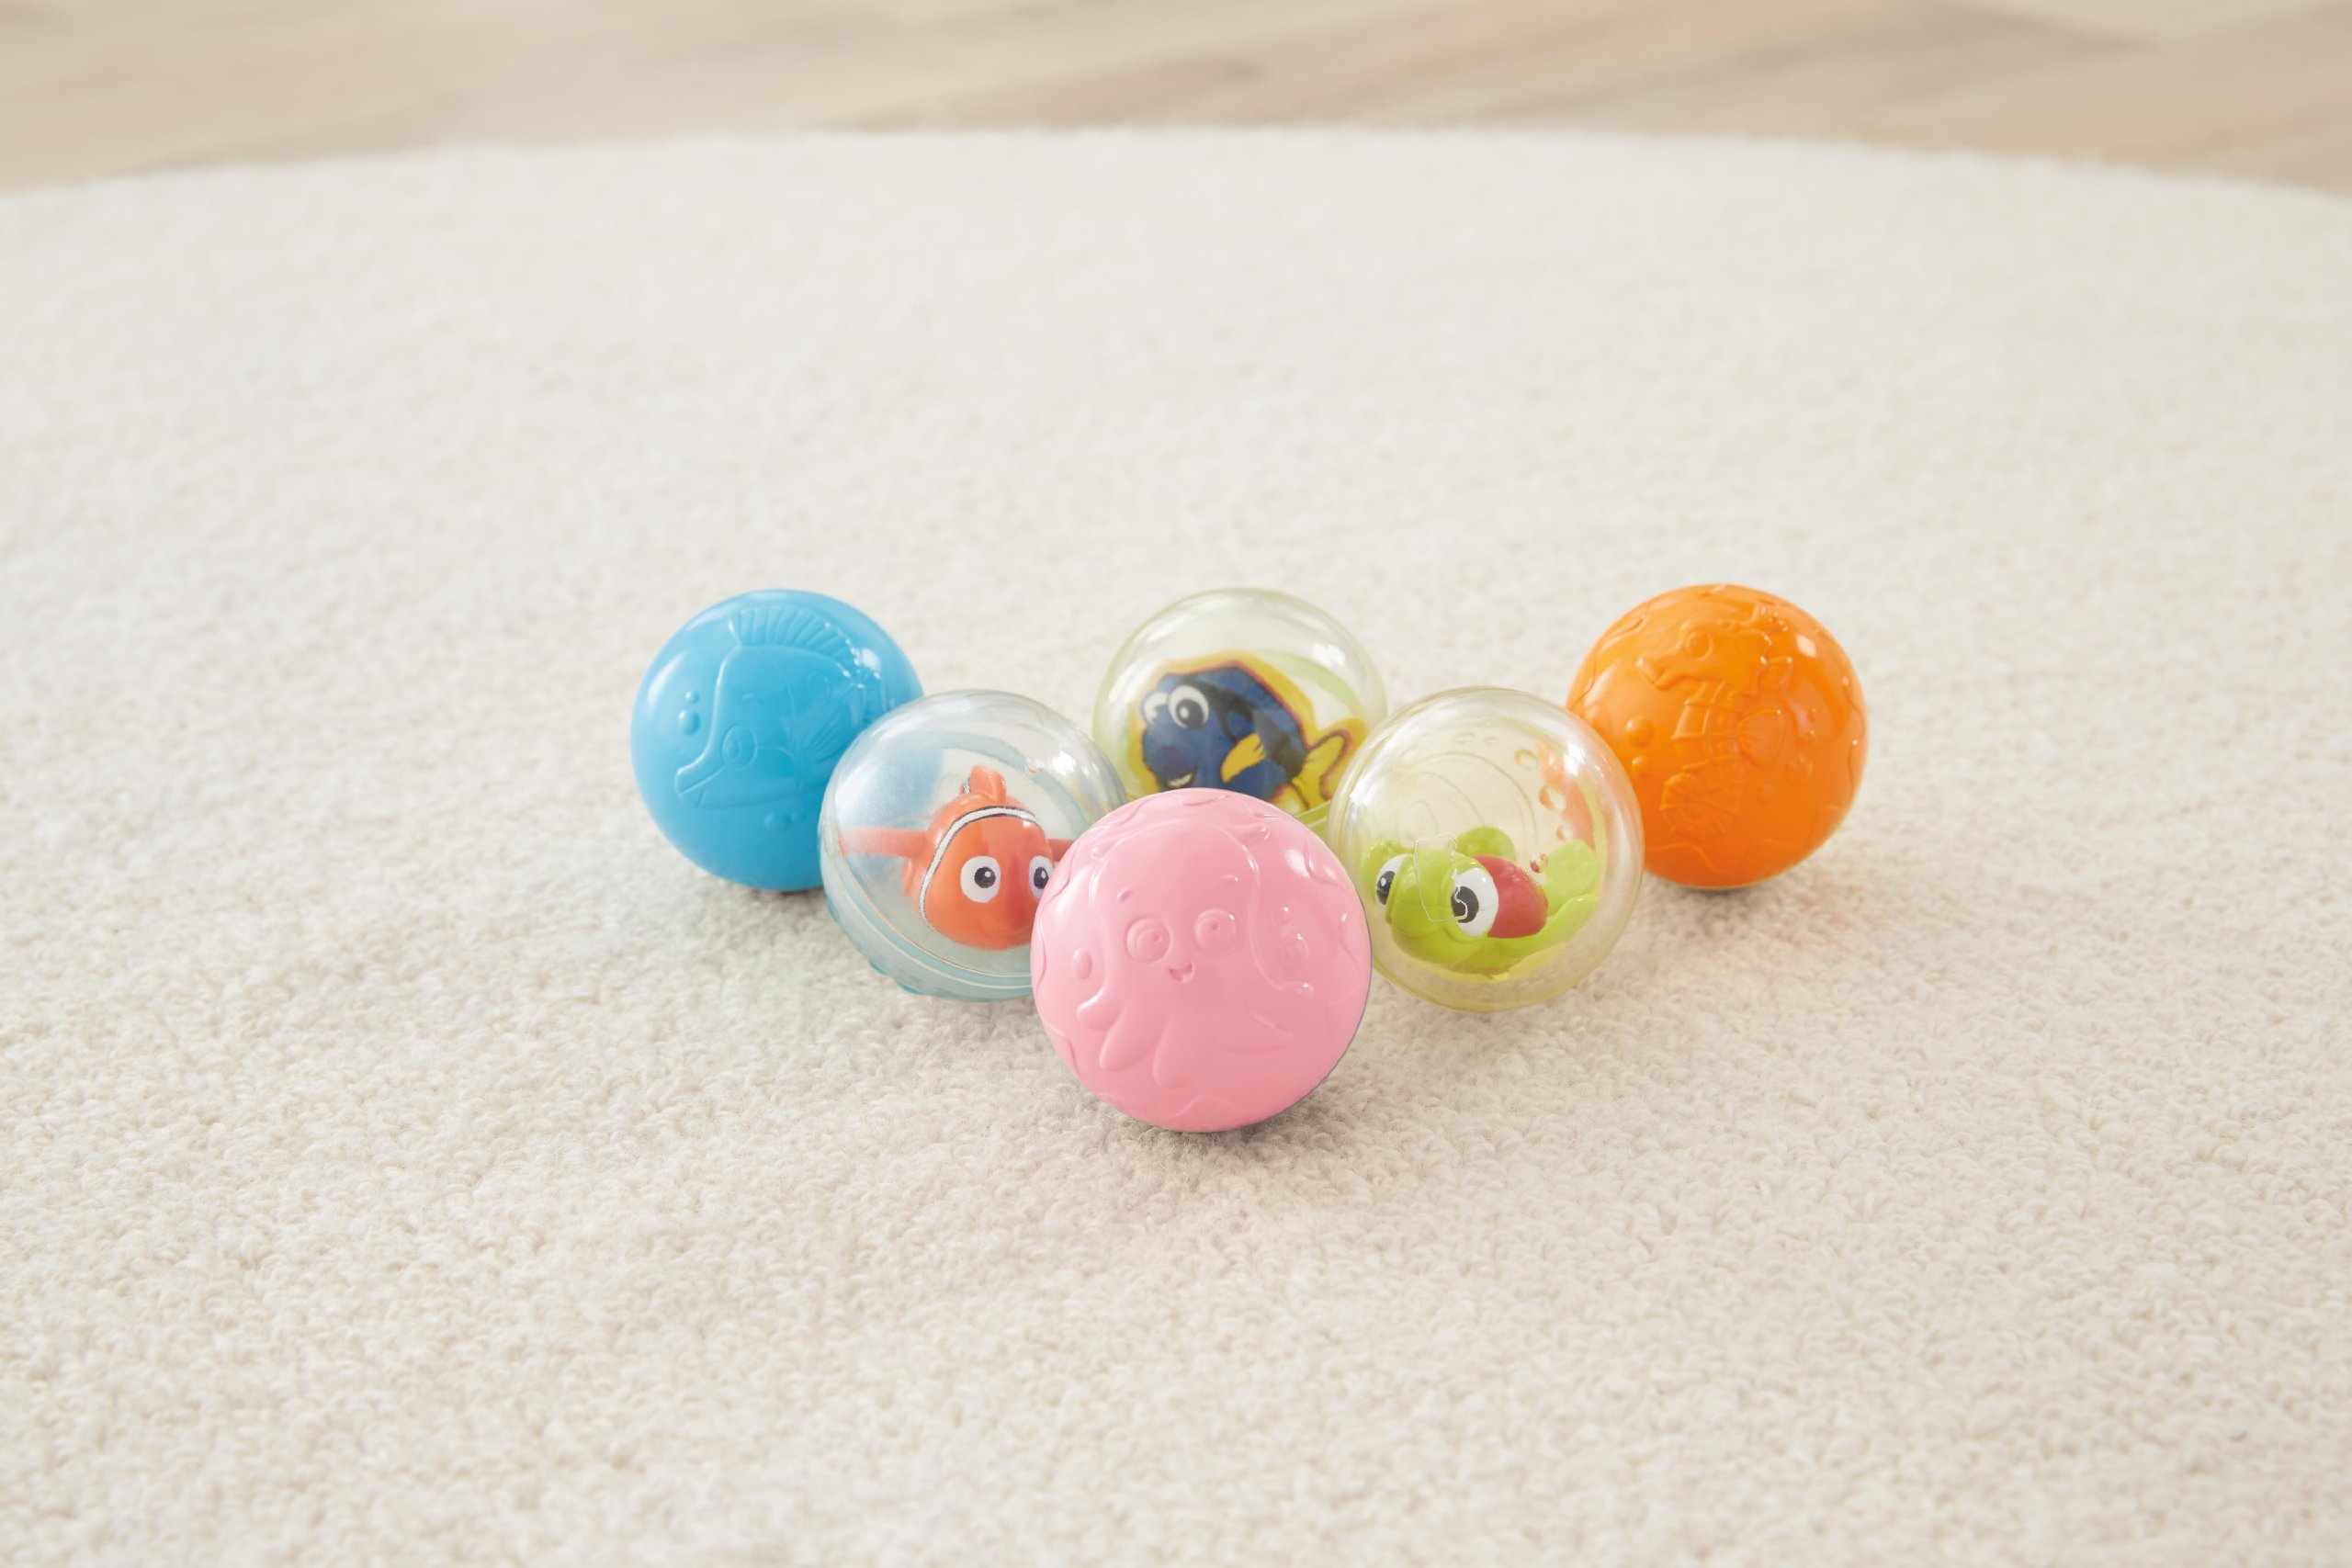 Fisher-Price Disney Baby Finding Nemo Amazing Animals Rounds by Fisher-Price (Image #6)